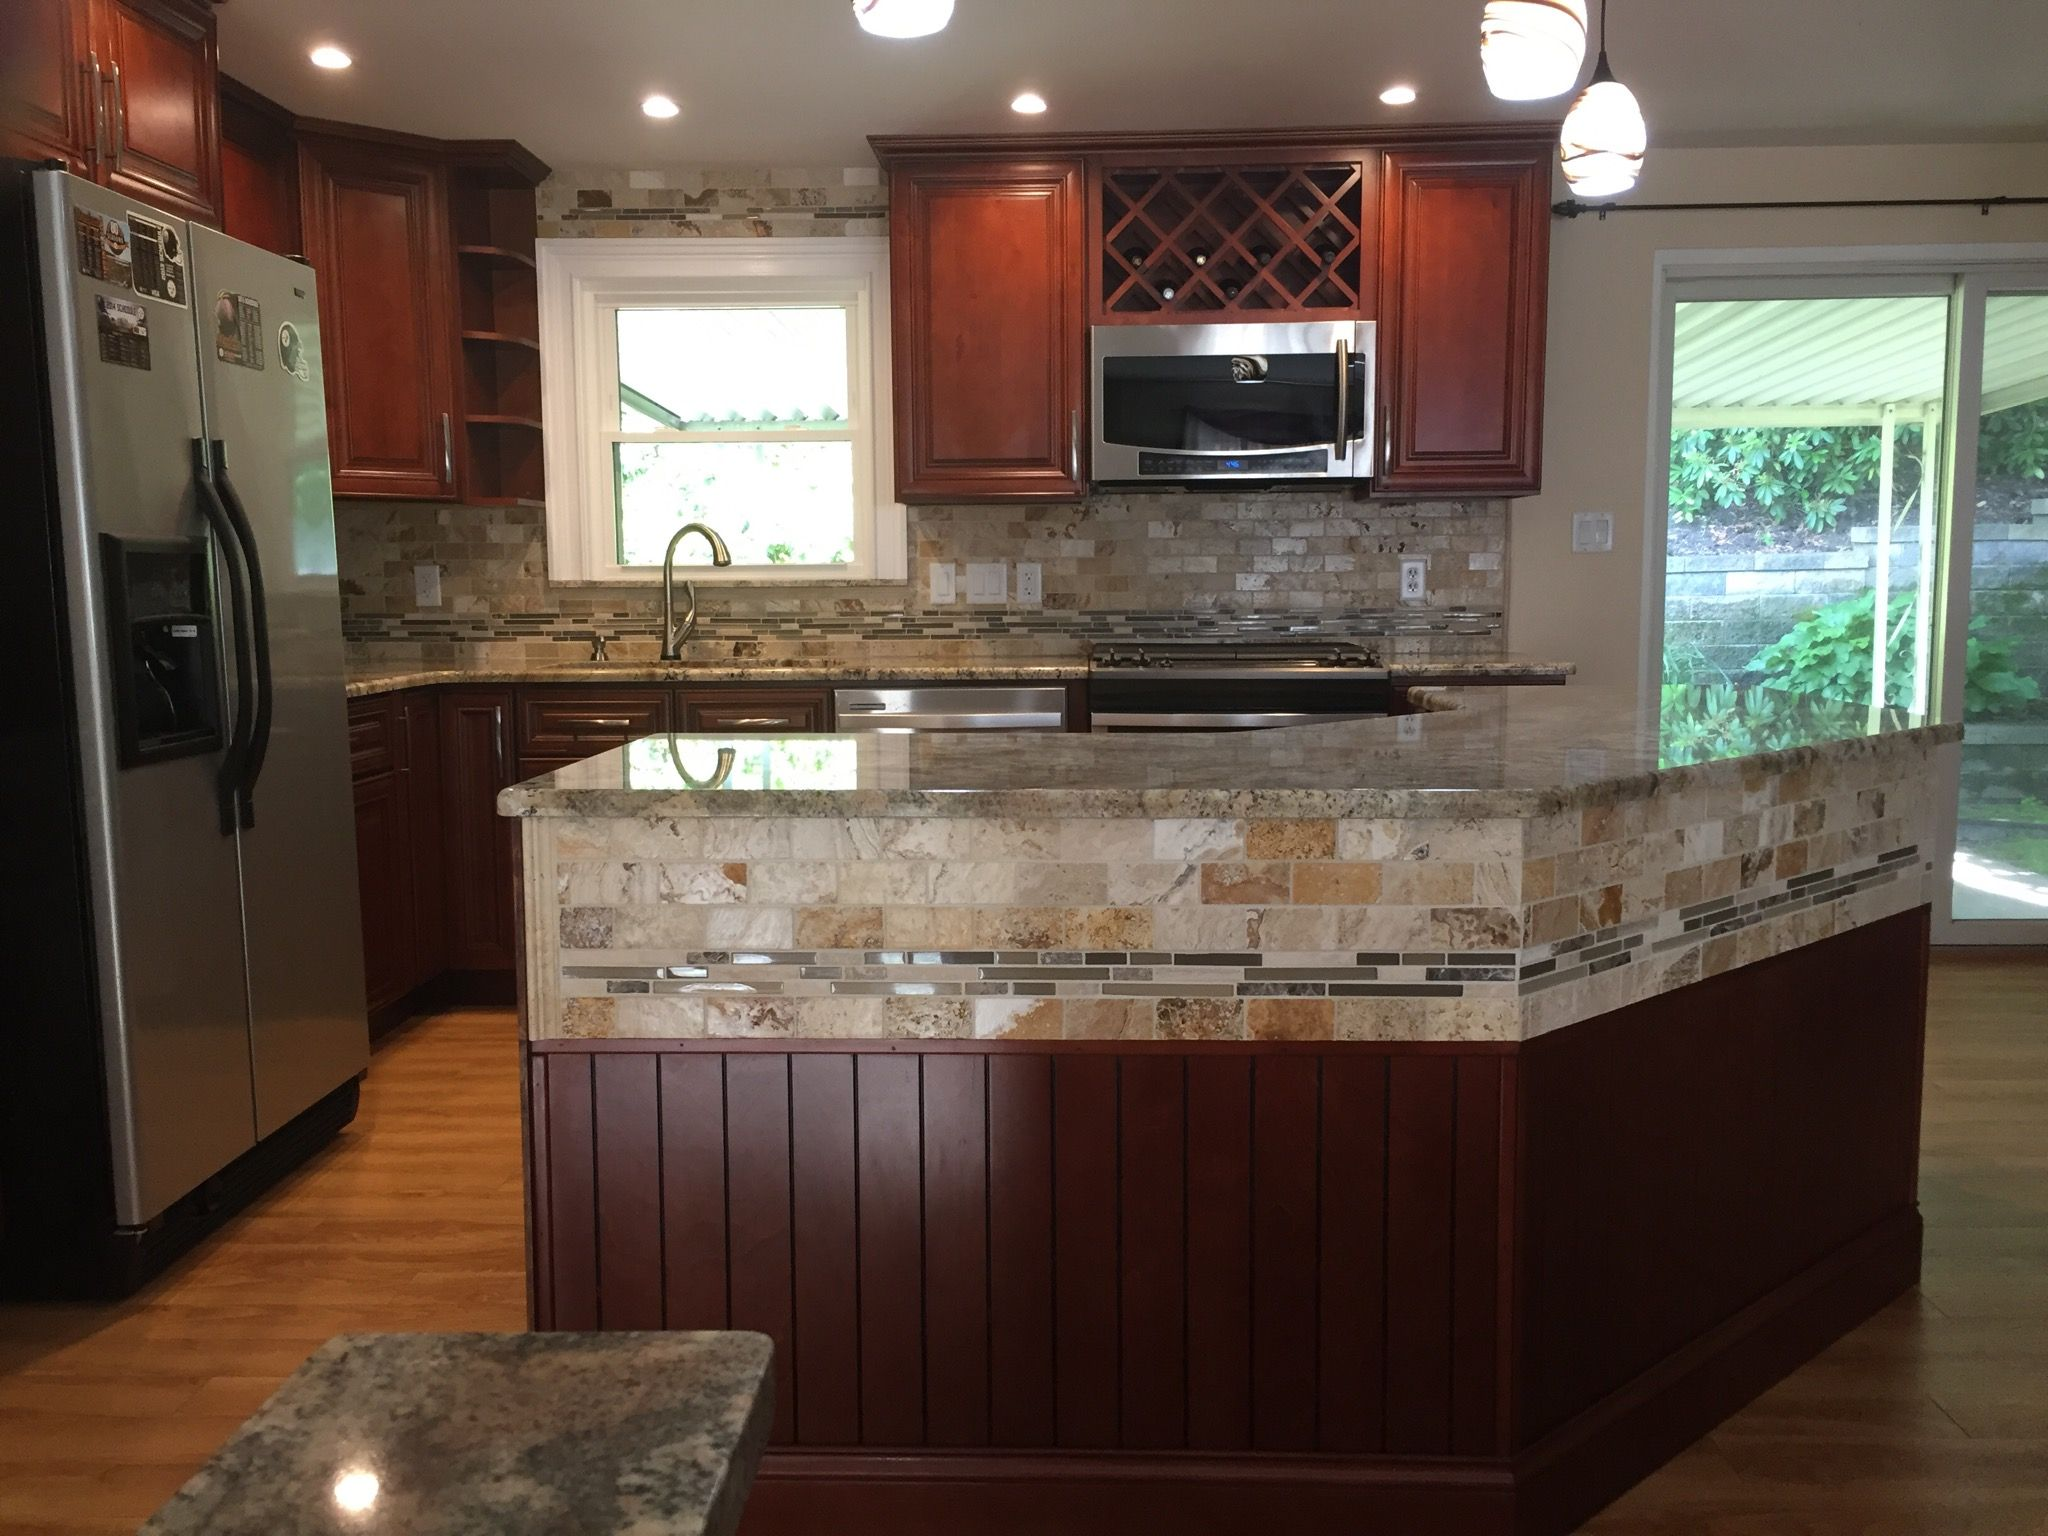 Lily ann cabinets review - Charleston Cherry Kitchen Cabinets Remodel By Lily Ann Cabinets Hello Howdy I